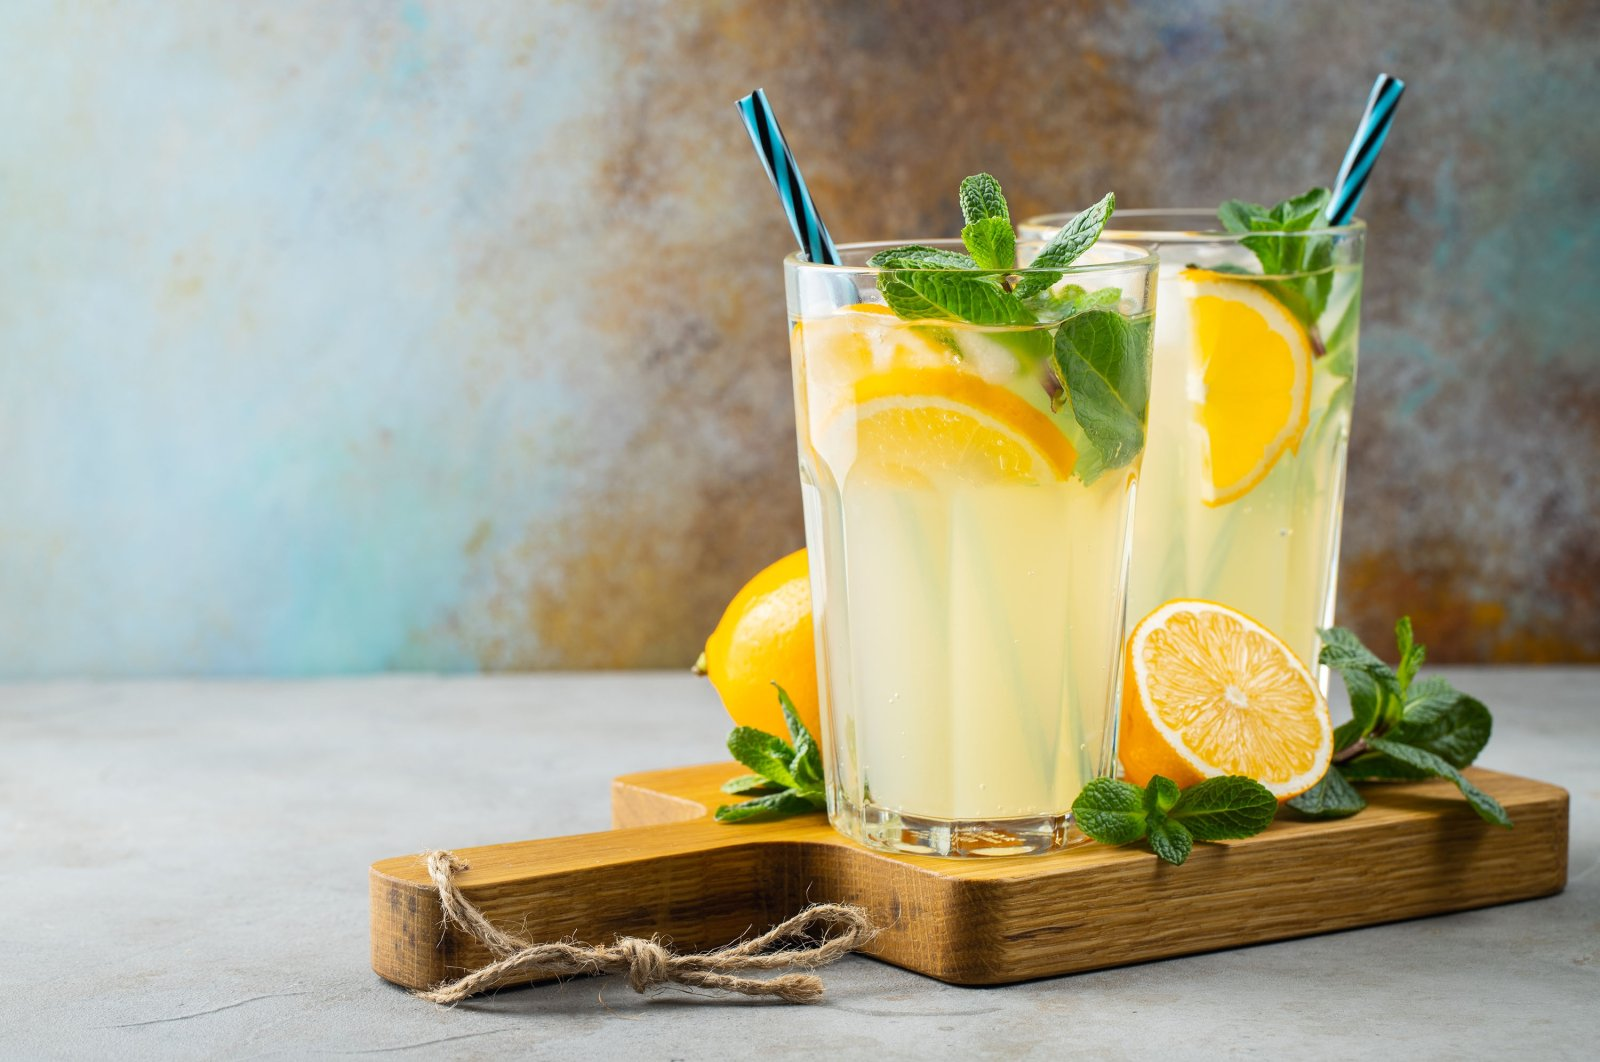 Two glasses with lemonade. (Shutterstock Photo)